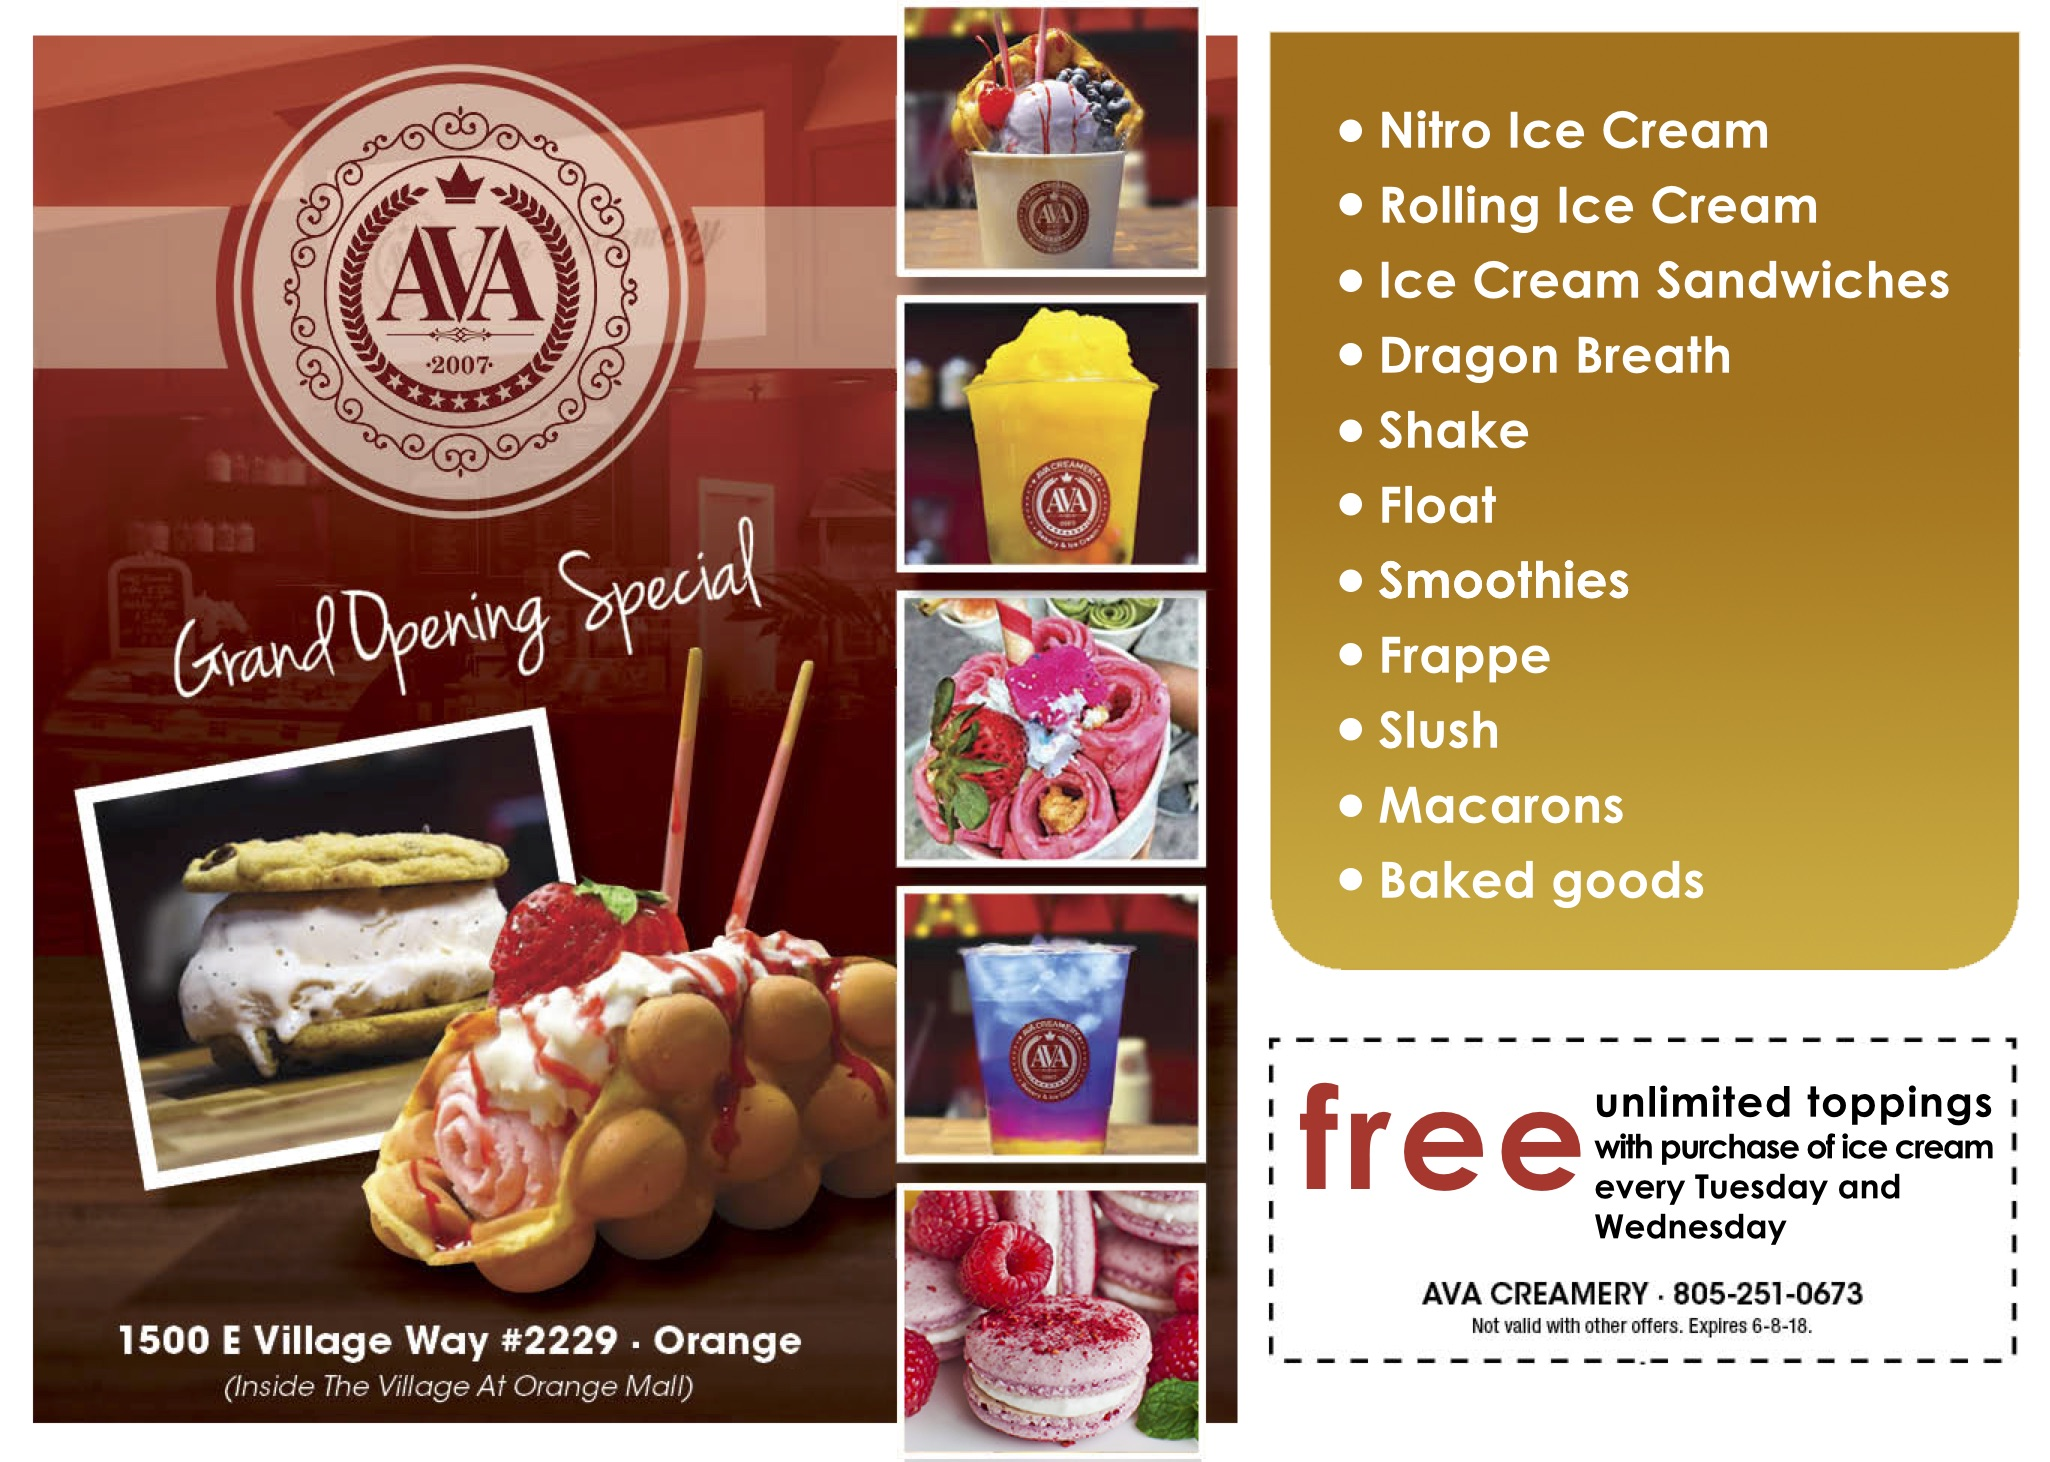 Grand Opening Special at Ava Creamery